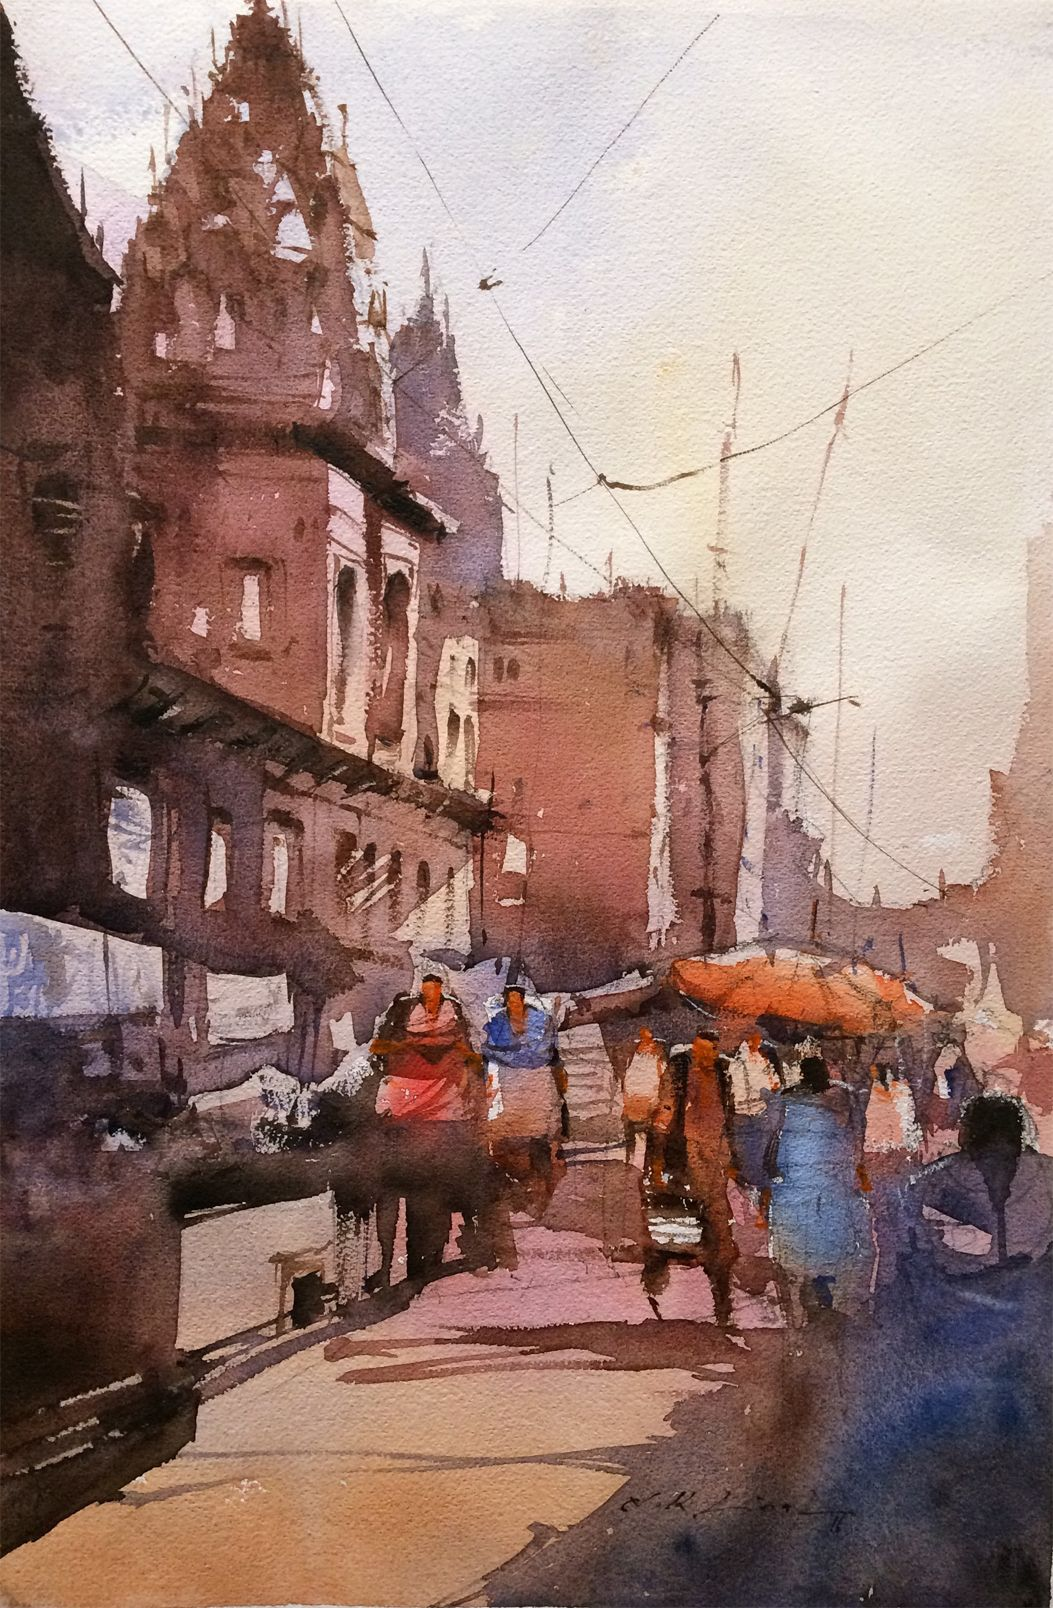 Watercolor Painting Landscape Of Varanasi Ghat By World Famous